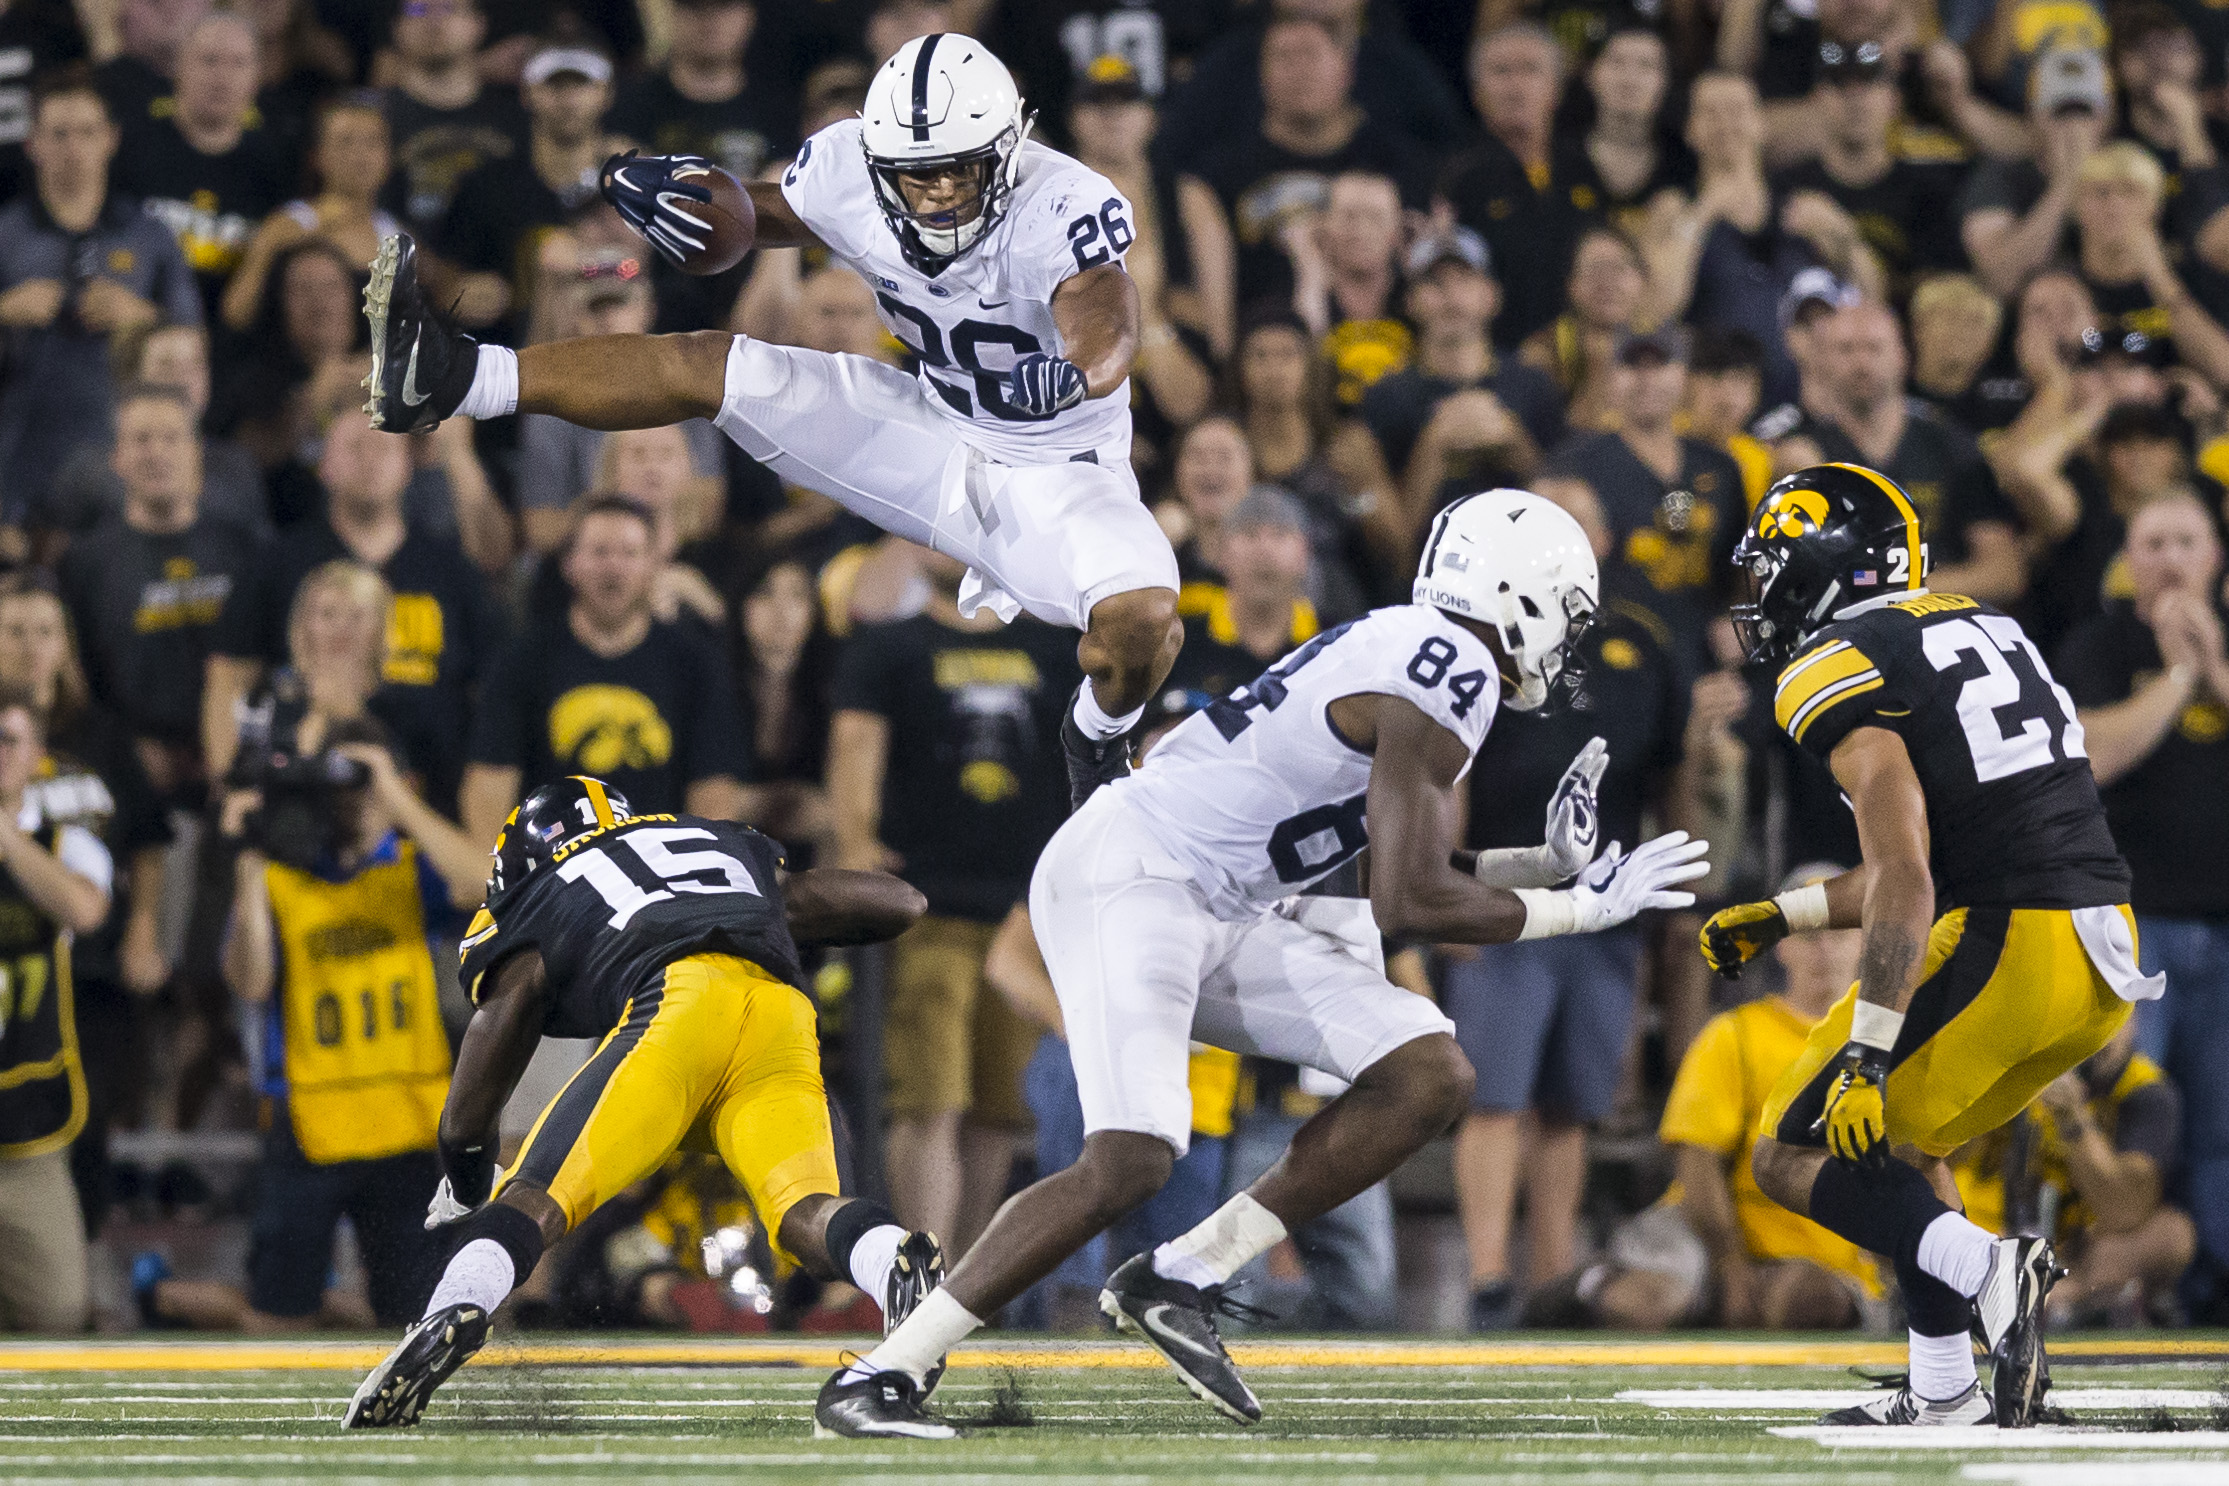 Friday flashback: Relive Penn State's 2017 game-winning drive at Iowa